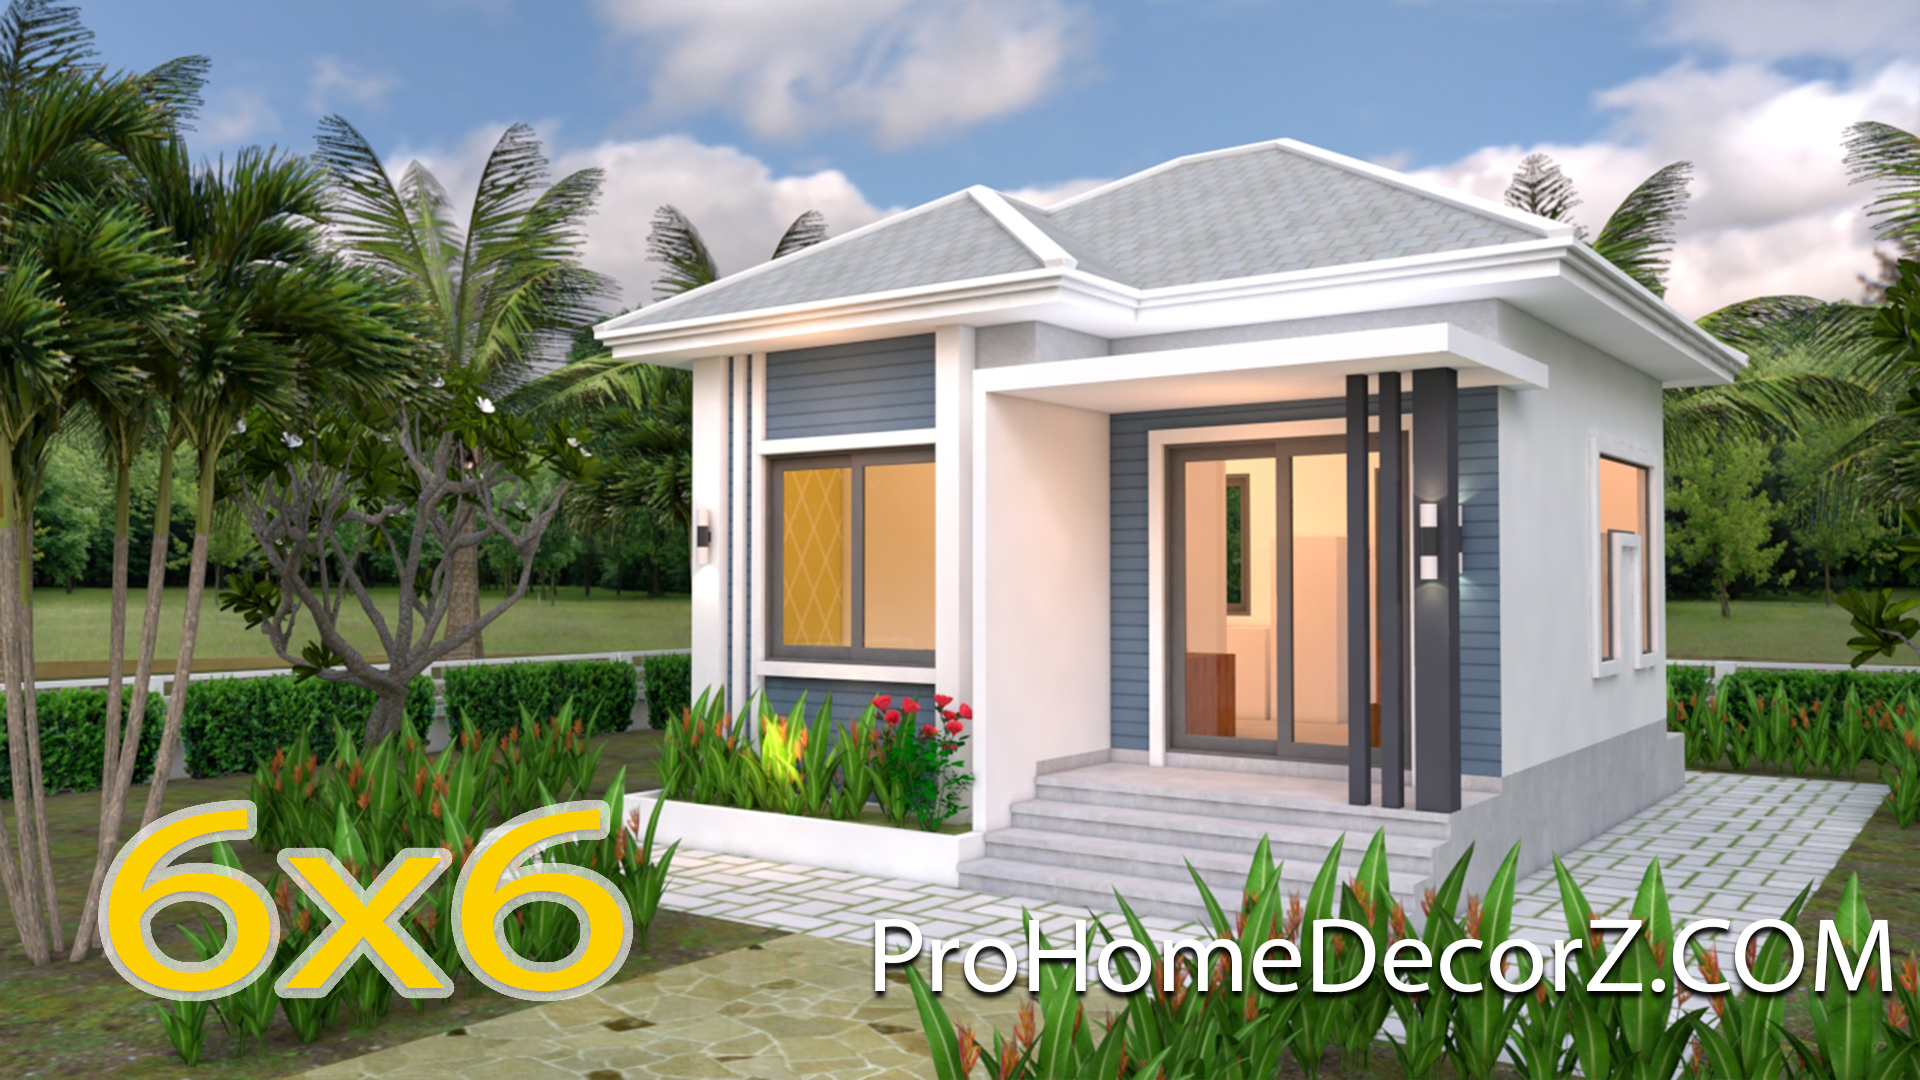 Small Bungalow House 6x6 Meter 20x20 Feet Pro Home Decor Z